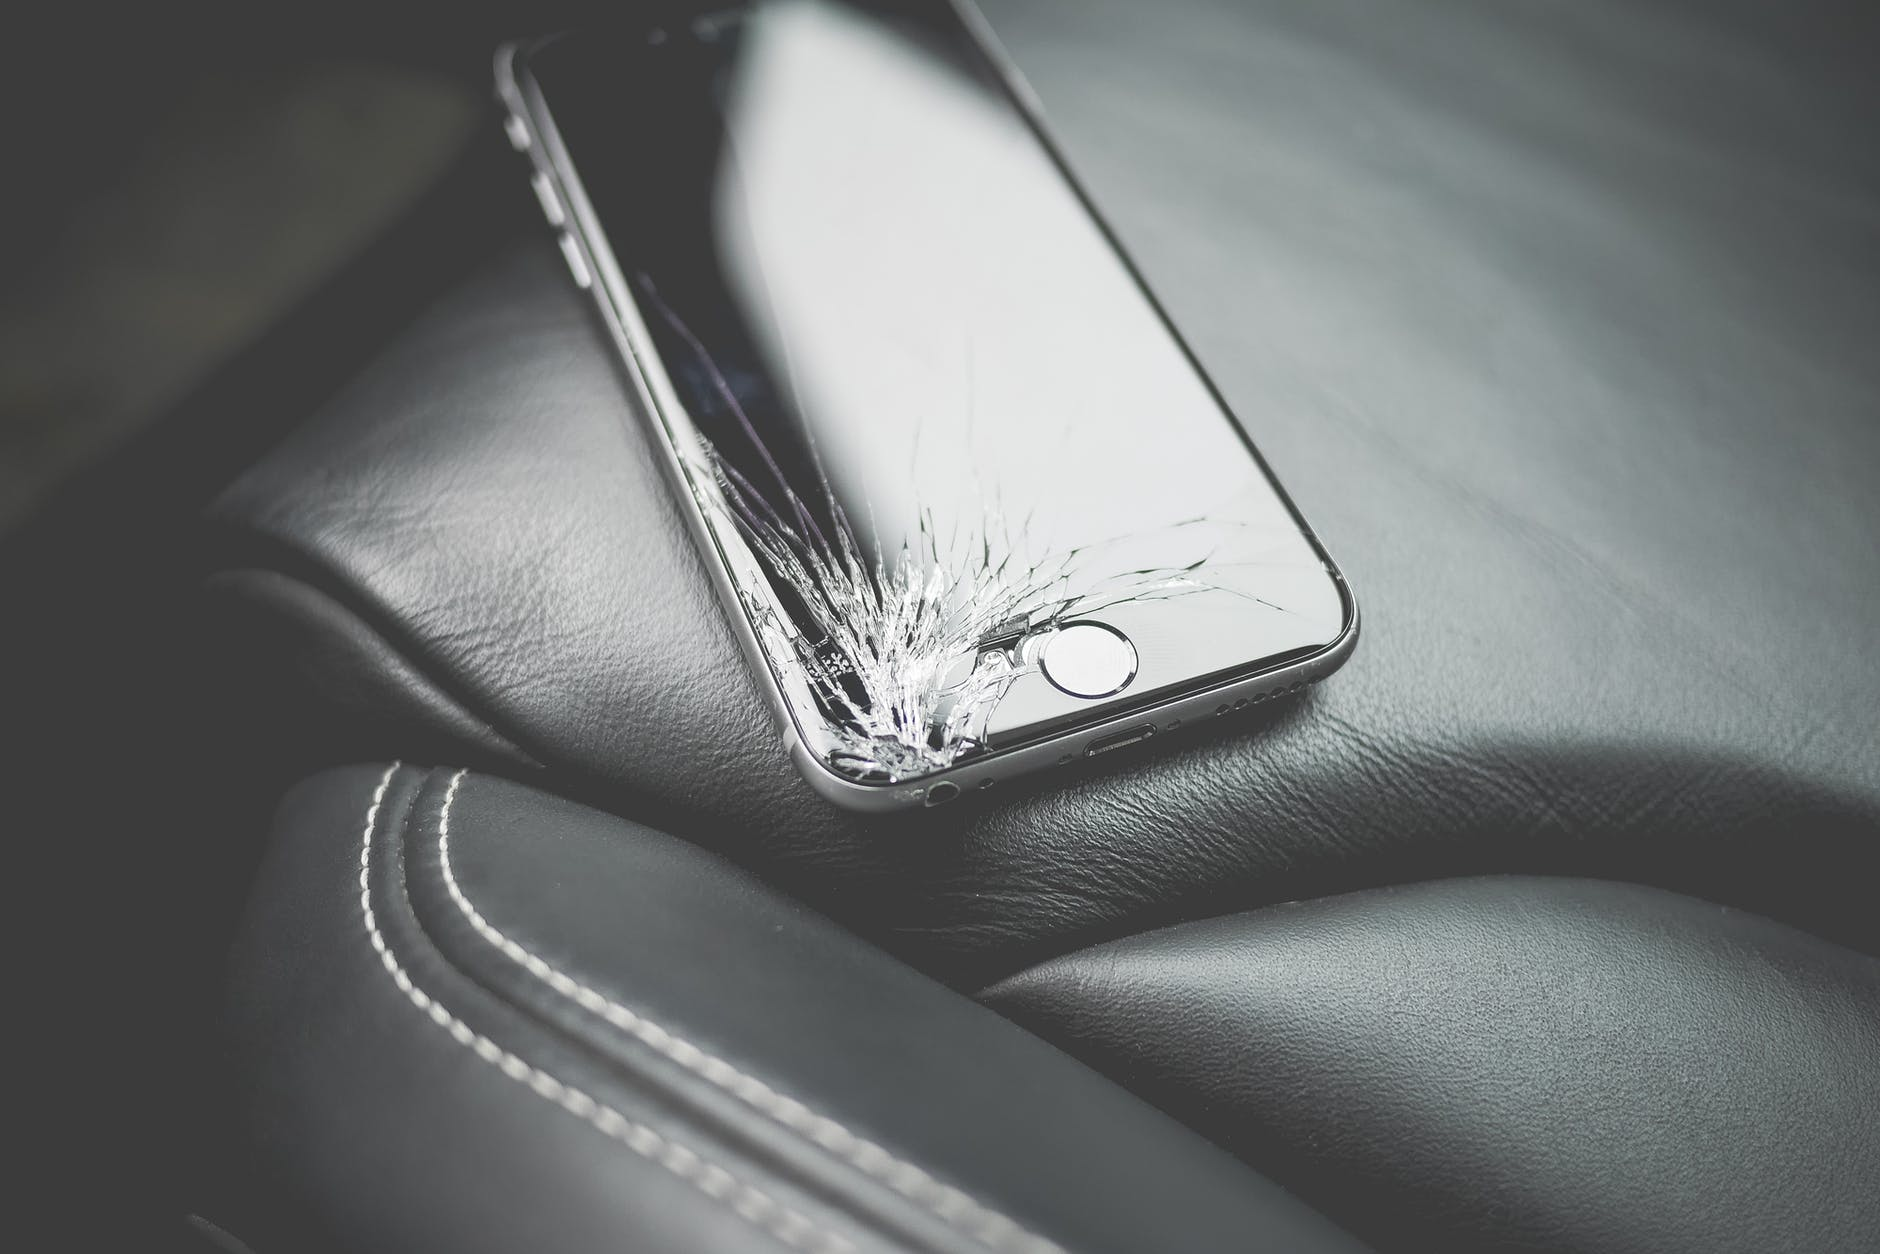 How Can You Get Your Broken Phone or Tech Accessories Repaired Online?